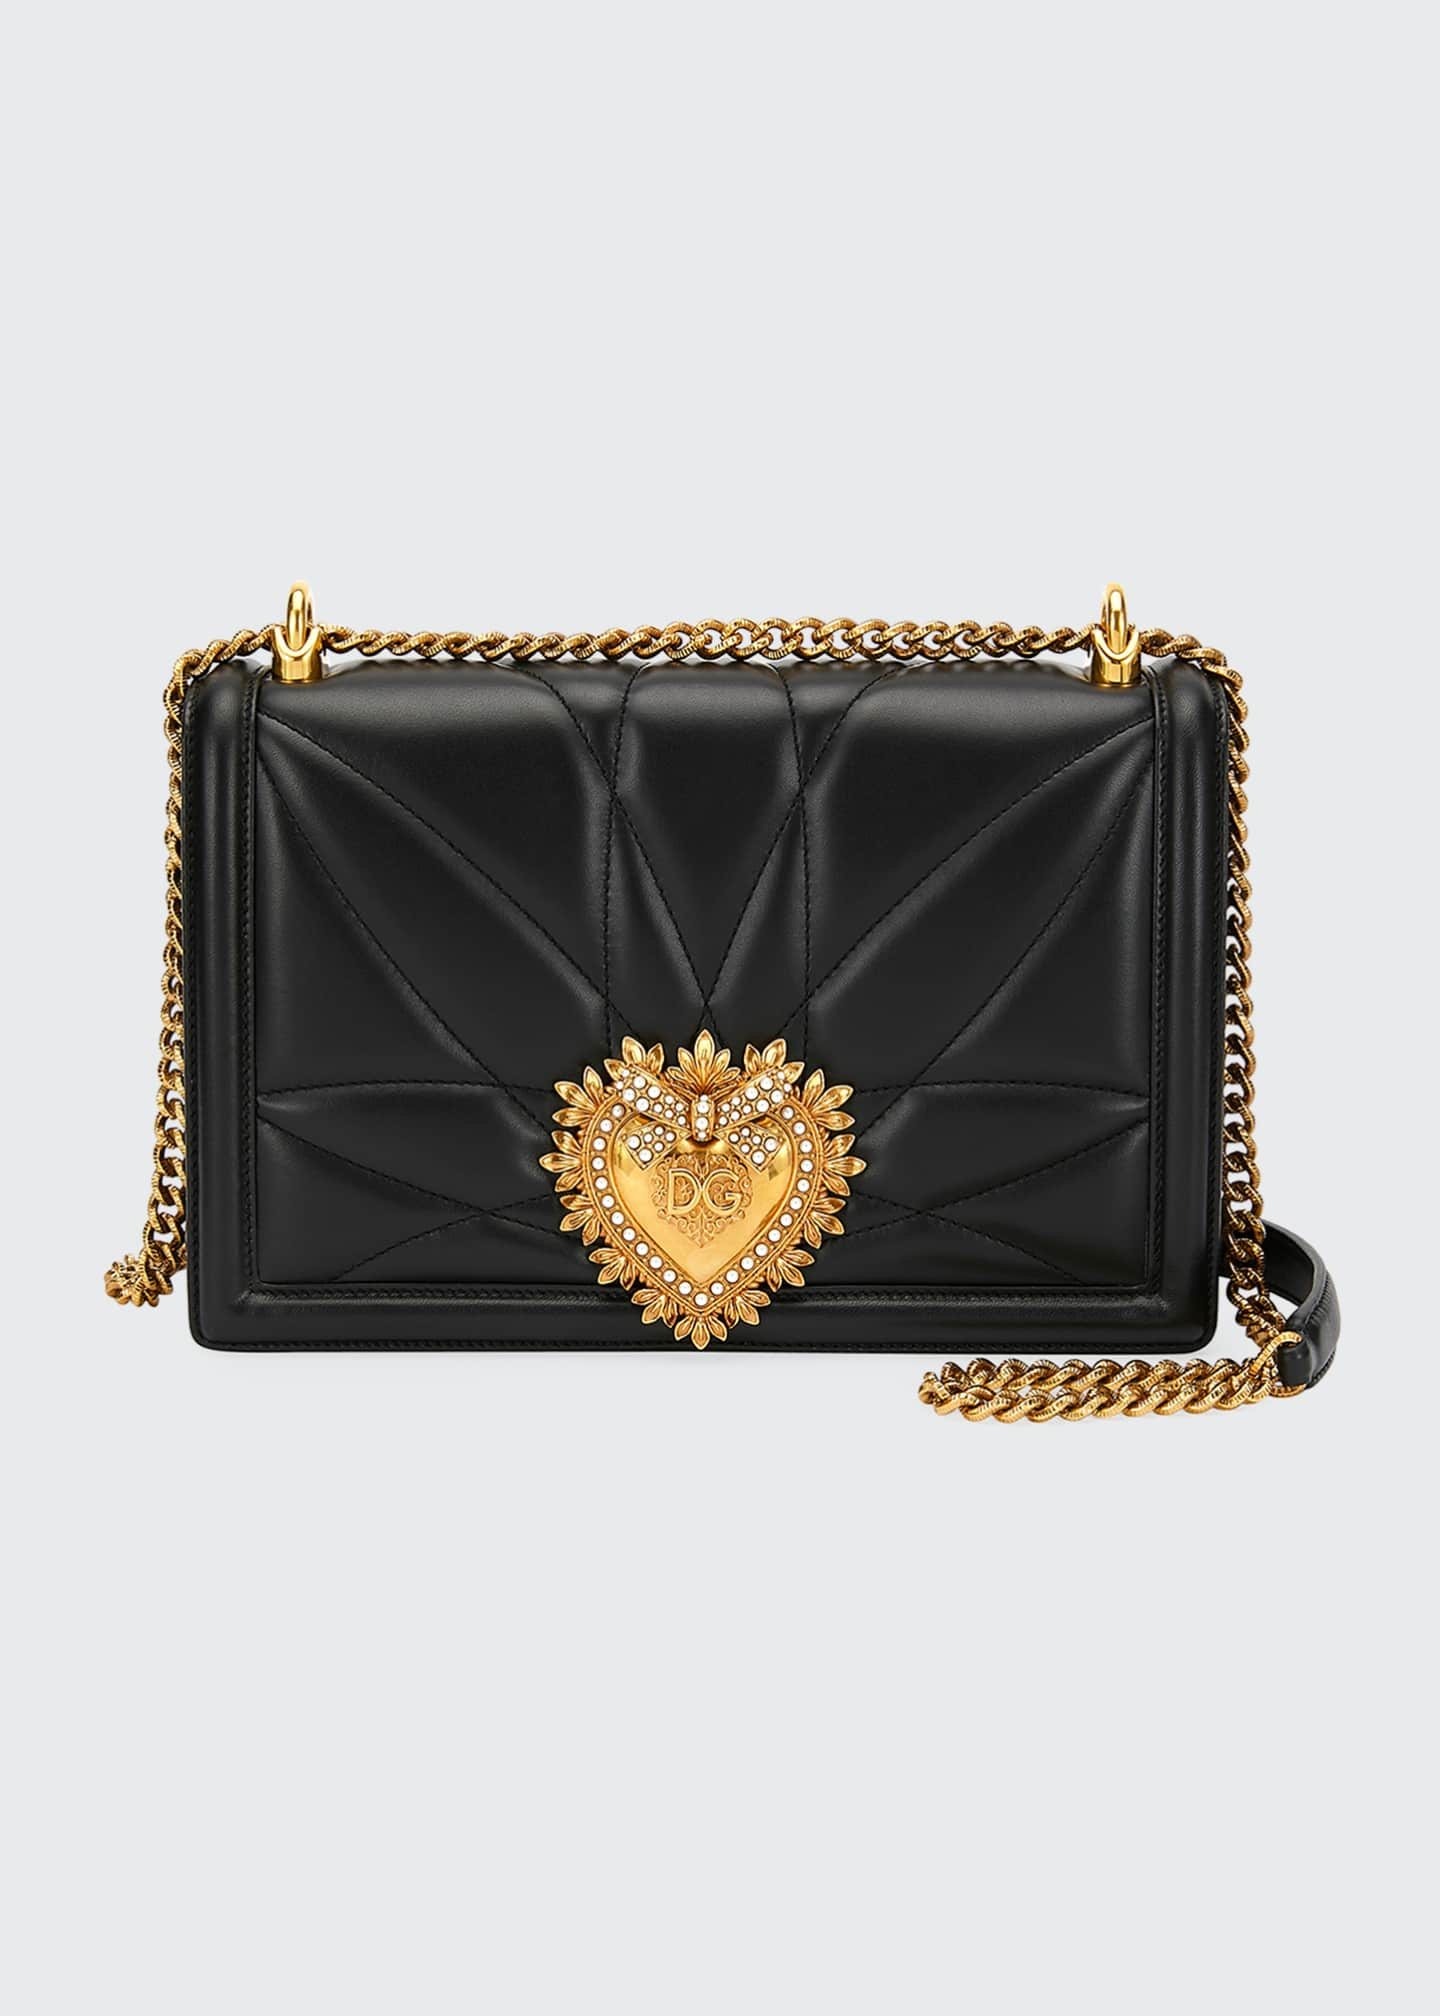 Dolce & Gabbana Devotion Large Quilted Shoulder Bag